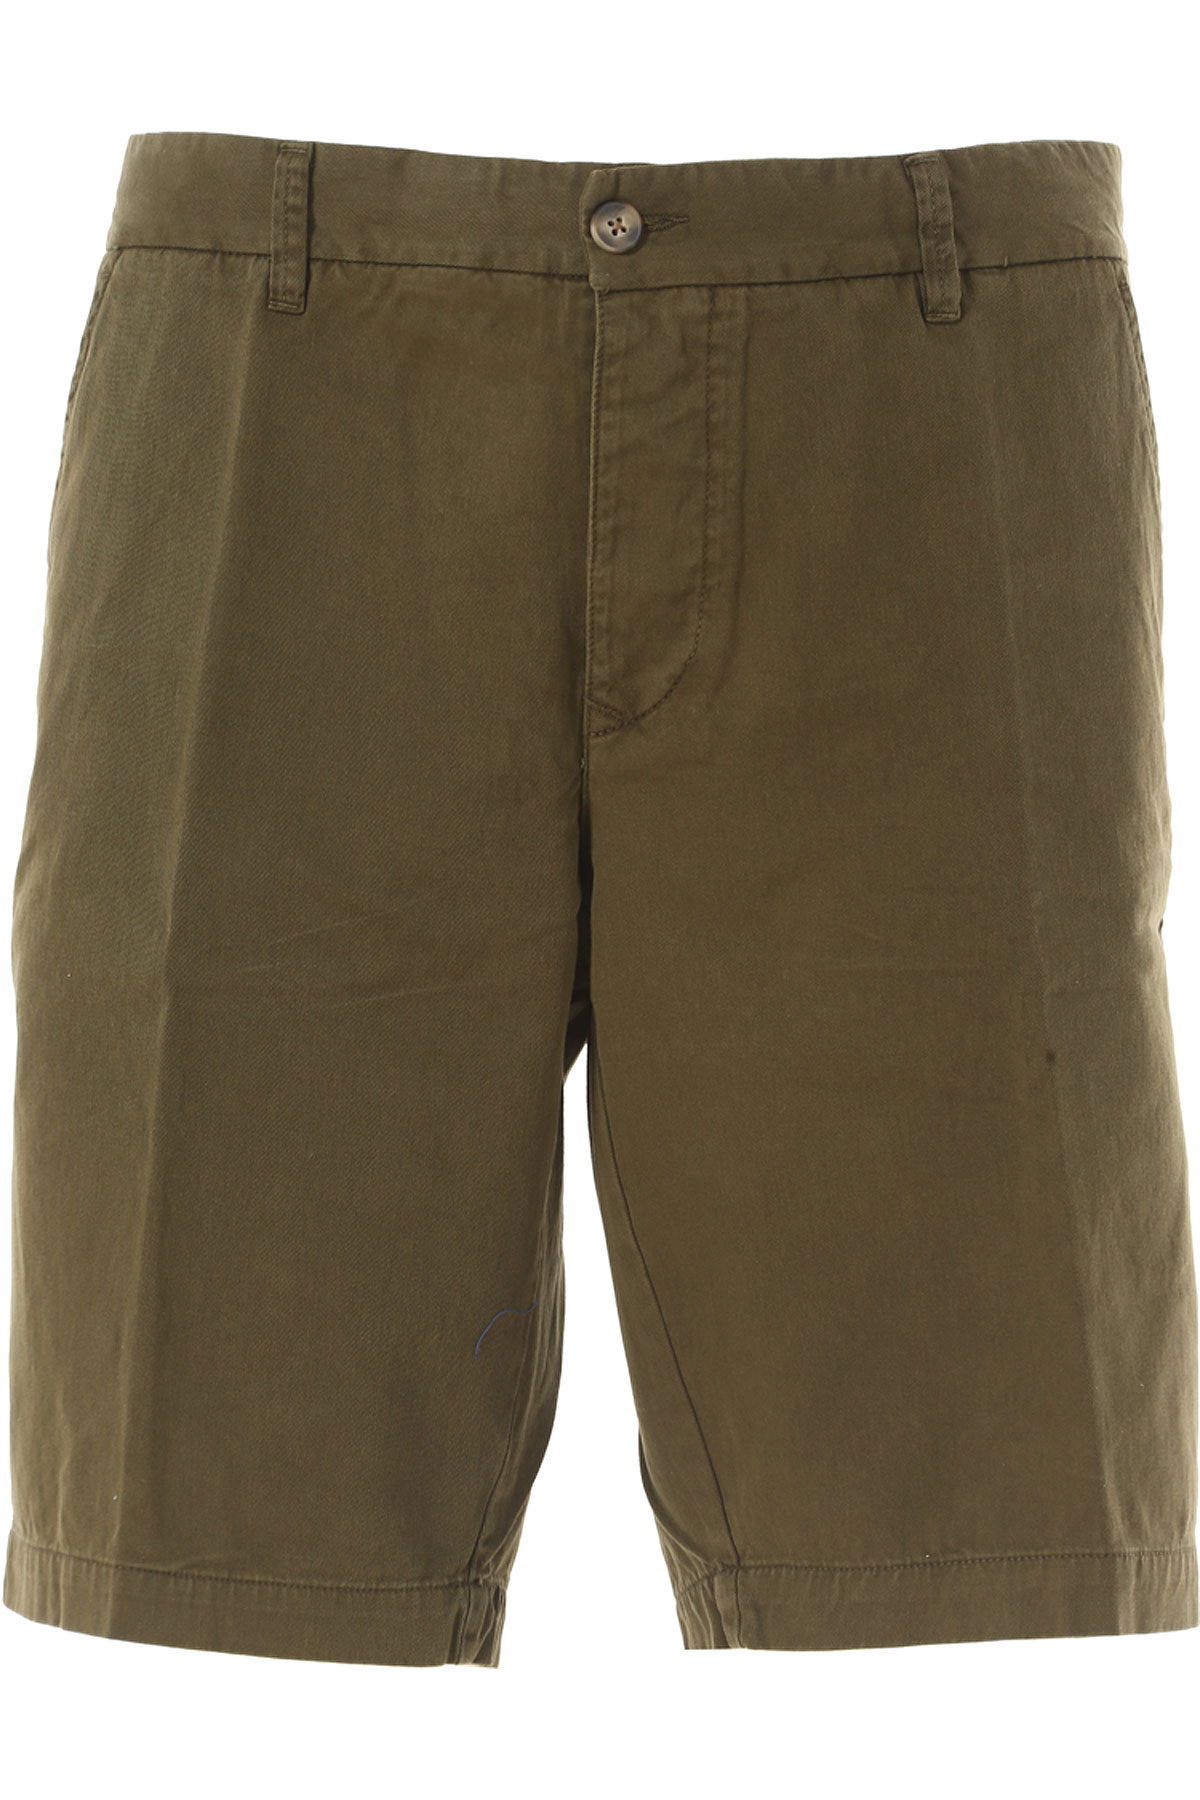 Image of Blauer Shorts for Men On Sale in Outlet, Military Green, Cotton, 2017, 33 38